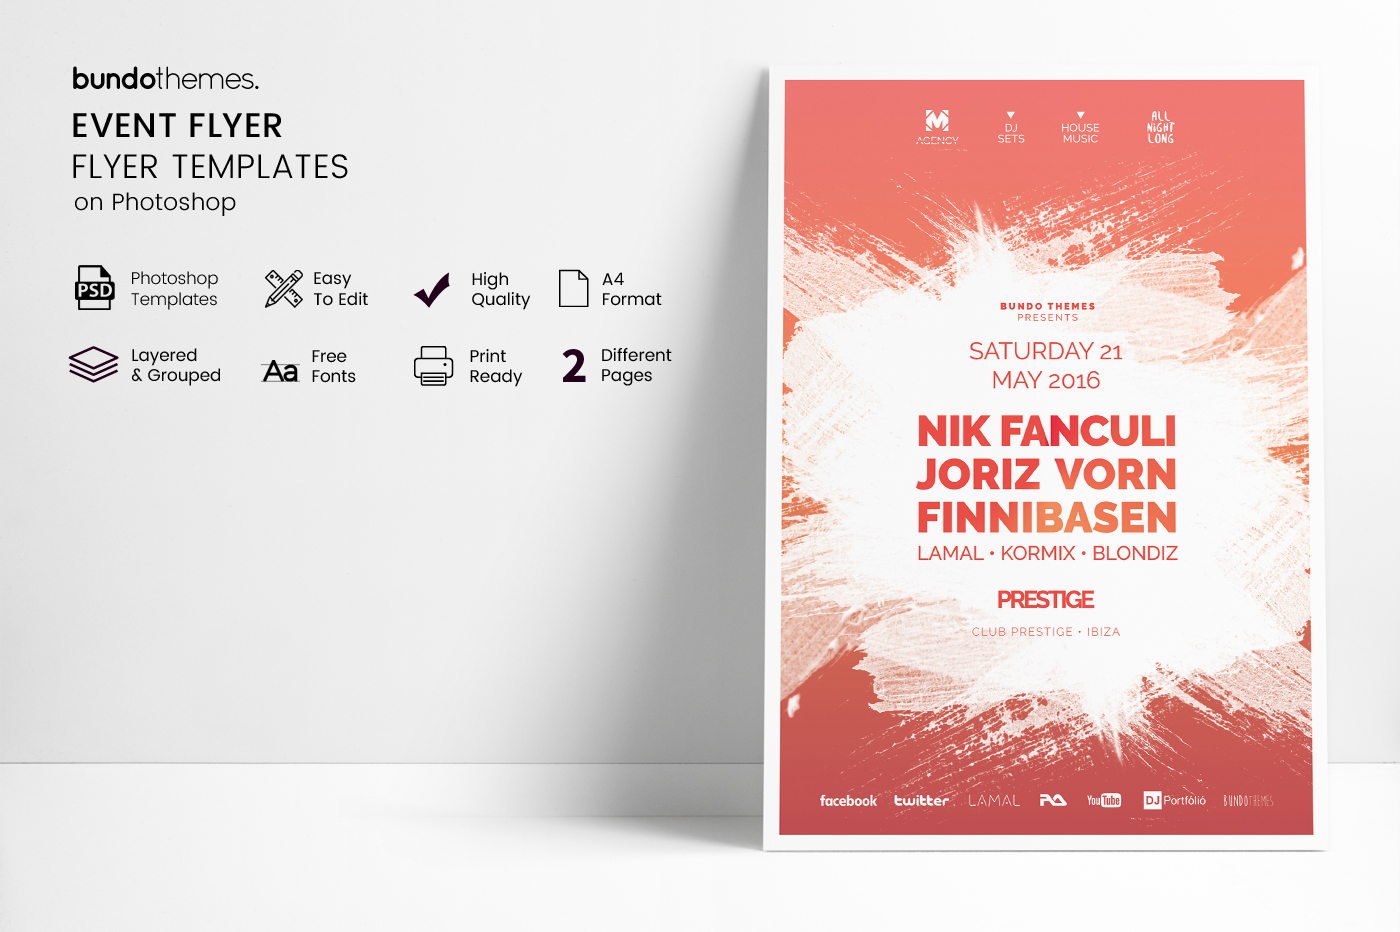 Event Flyer Template example image 2